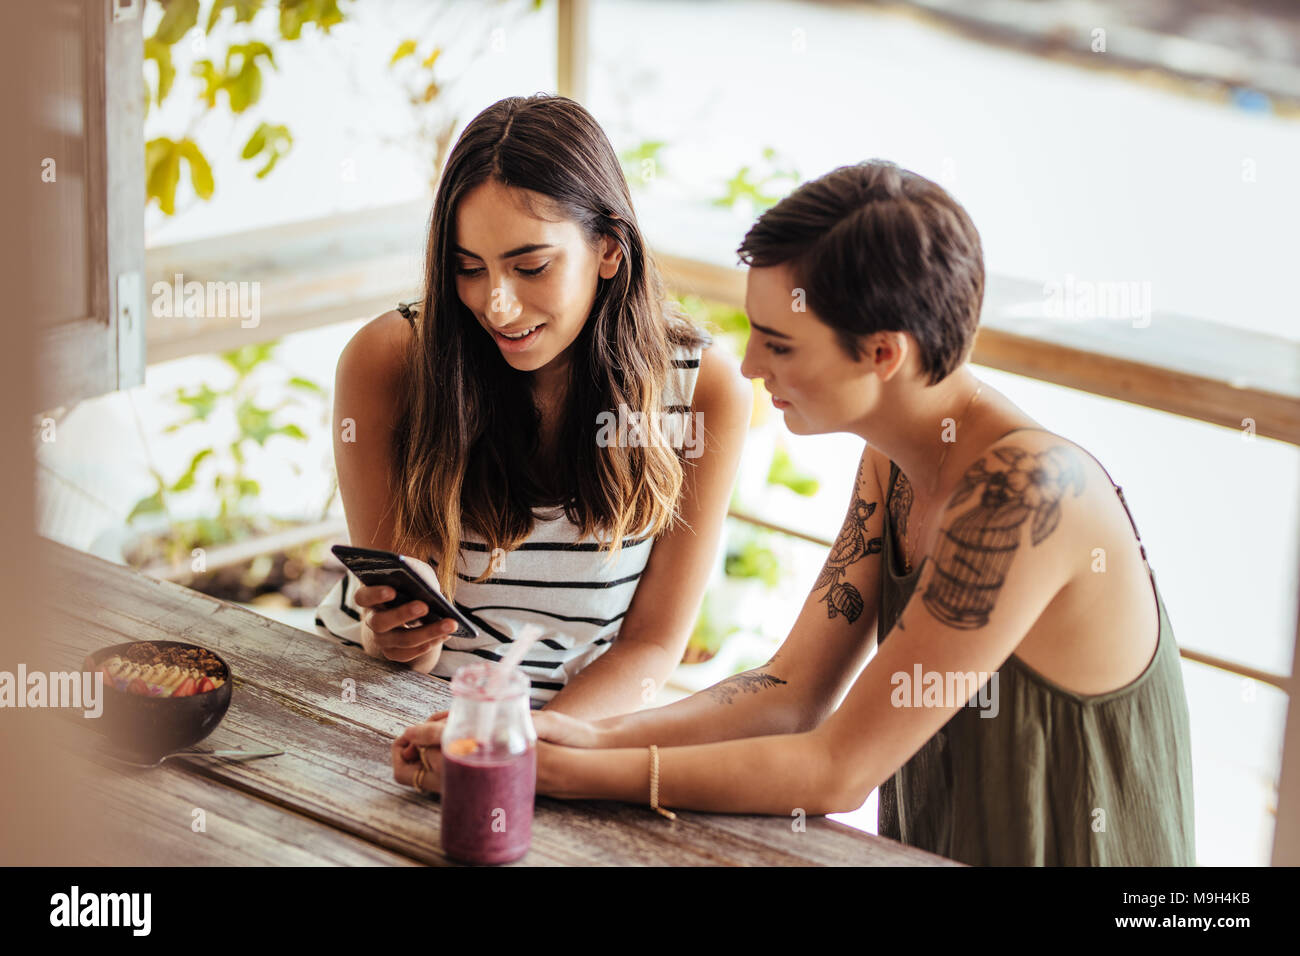 Two women sitting at a restaurant looking at a mobile phone. Women sitting at a restaurant with a smoothie and a dessert bowl on the table. - Stock Image